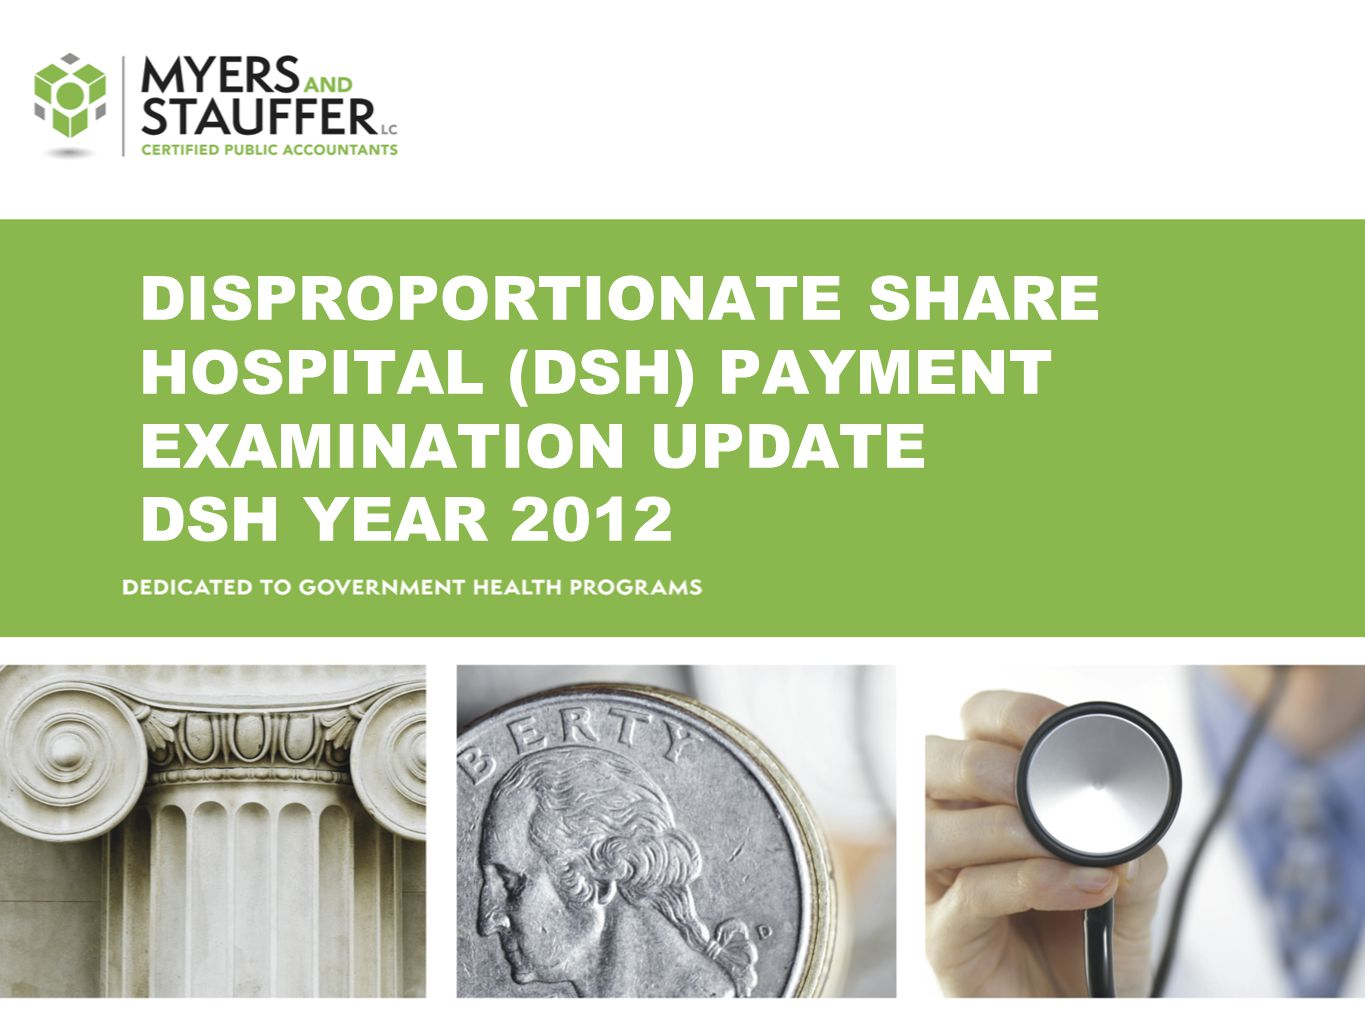 DISPROPORTIONATE SHARE HOSPITAL (DSH) PAYMENT EXAMINATION UPDATE DSH YEAR 2012